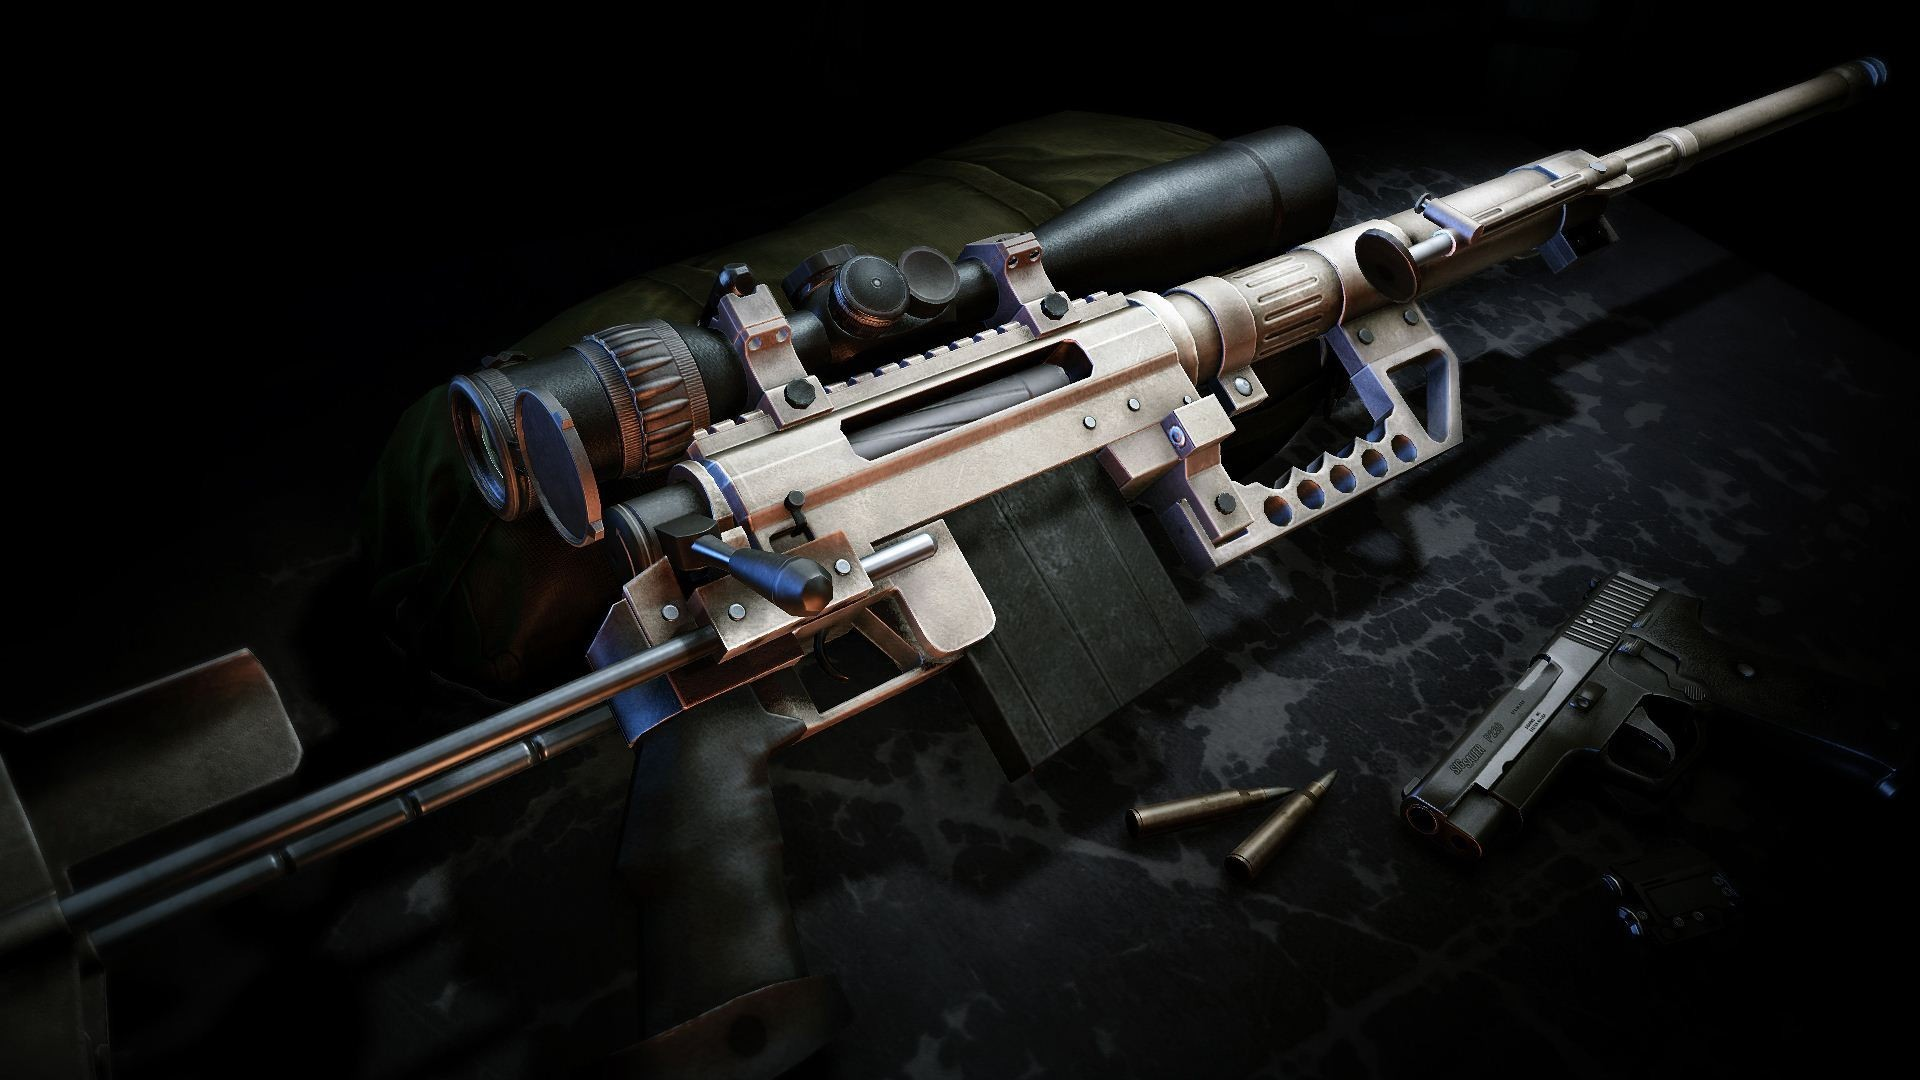 Pictures of Sniper Gun Wallpaper 3d - #rock-cafe